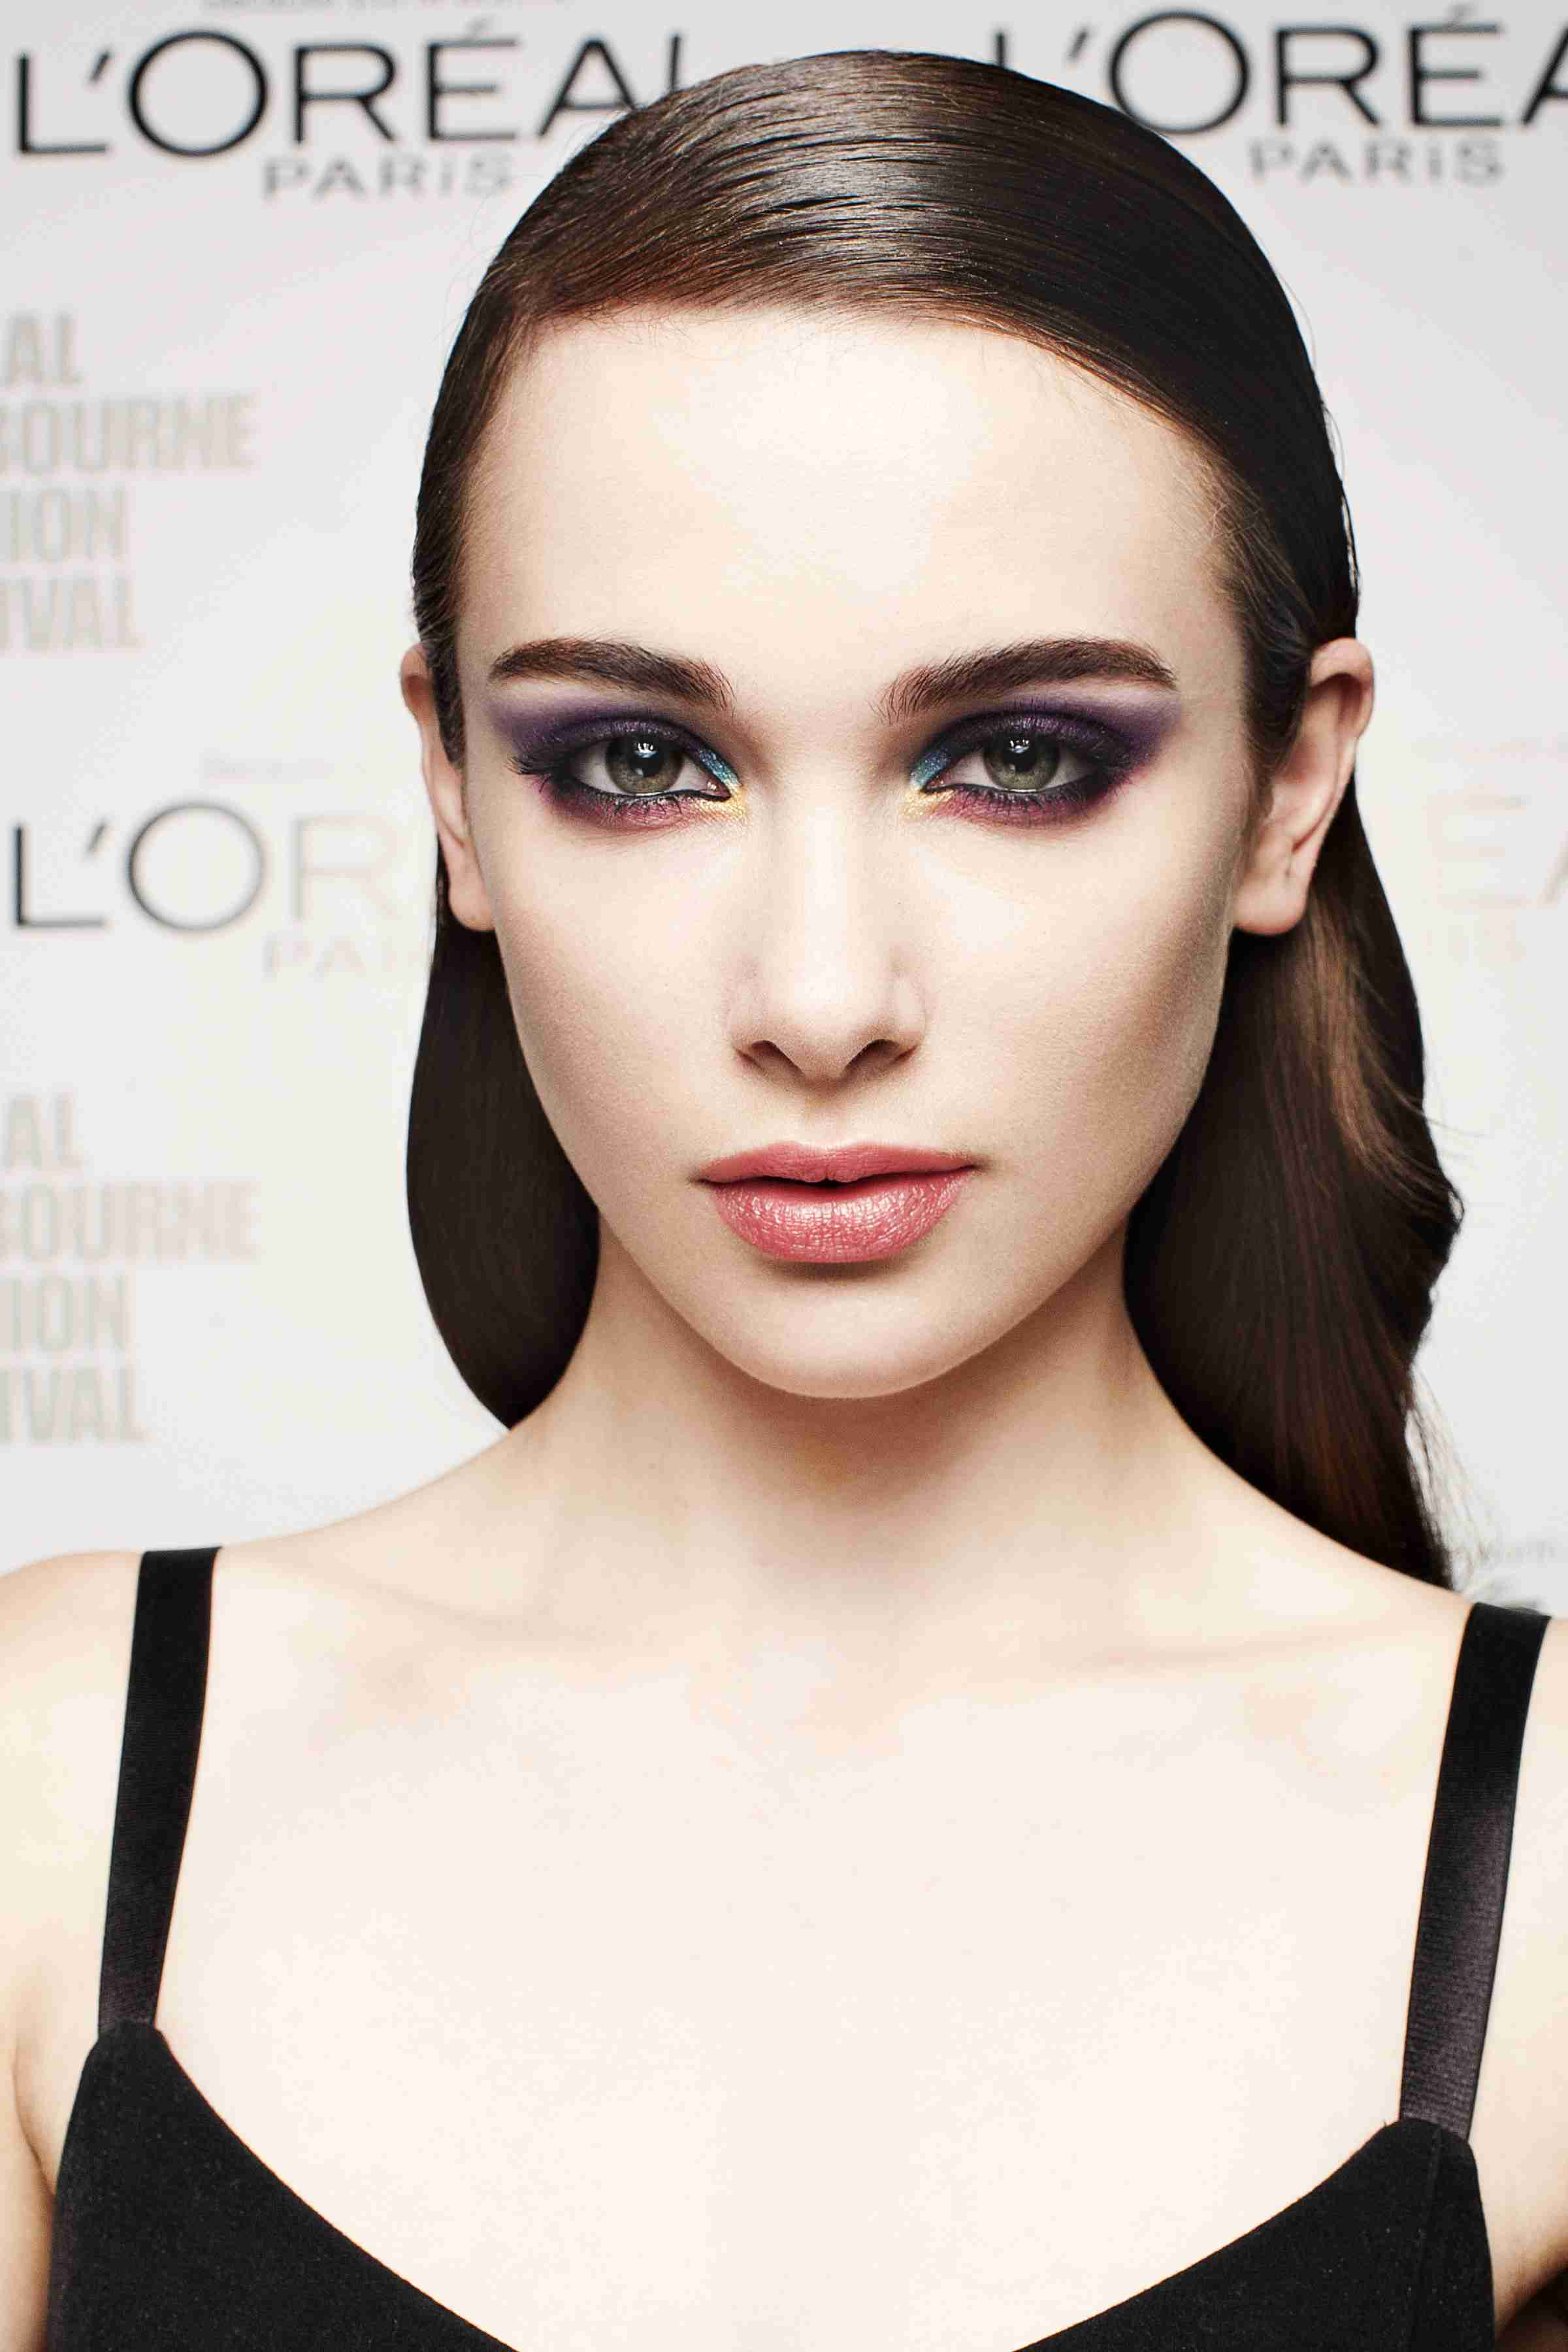 LMFF 2013: THE BEAUTY LOOK FROM RUNWAY 02 | olivialouise